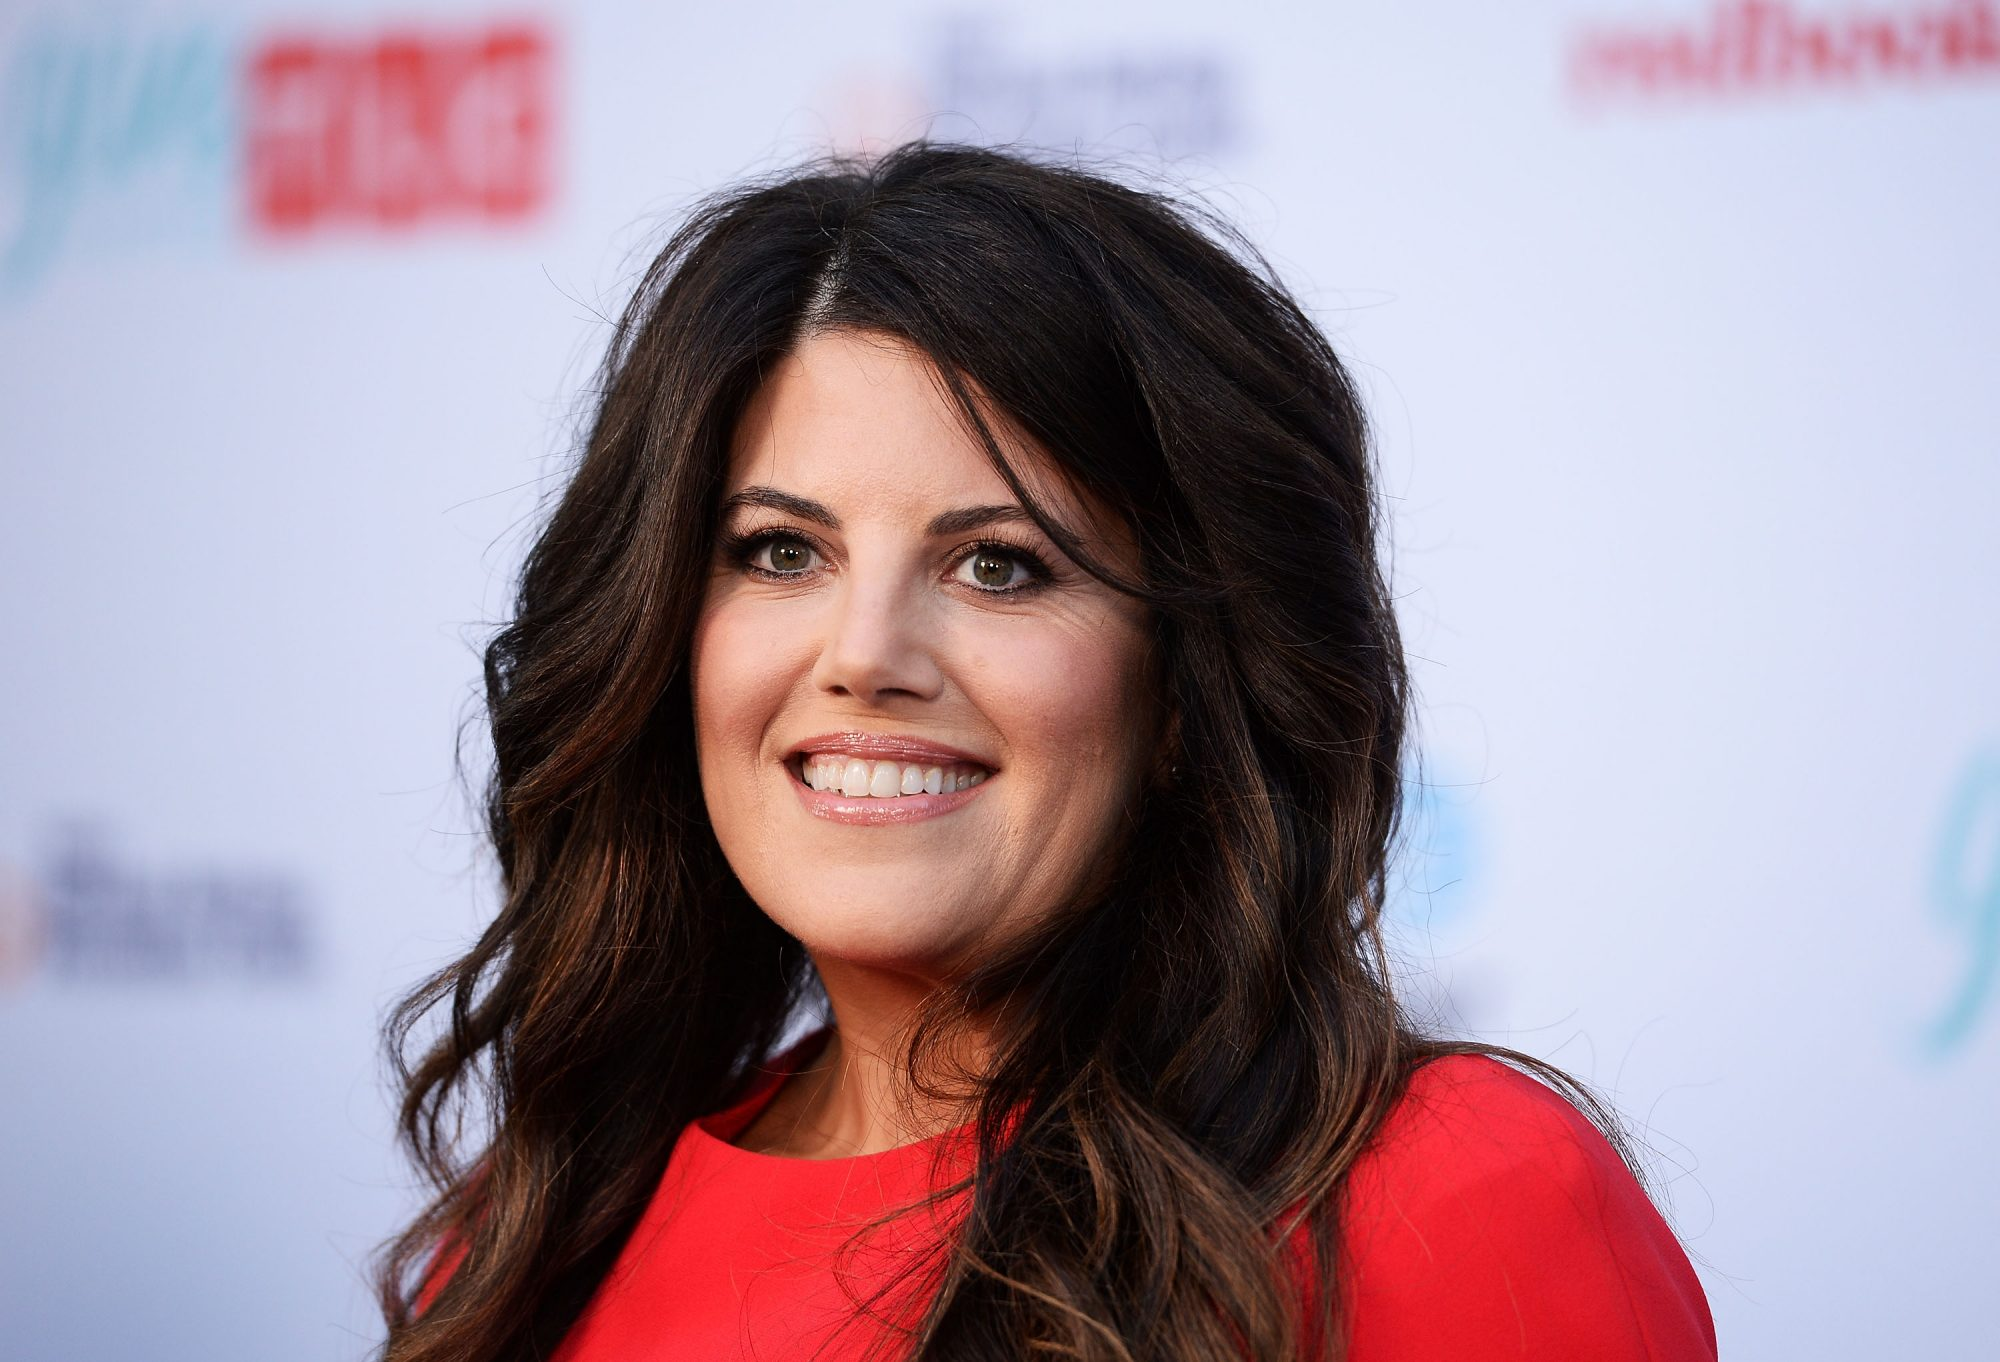 Monica Lewinsky Opens Up About the #MeToo Movement and Being Diagnosed With PTSD